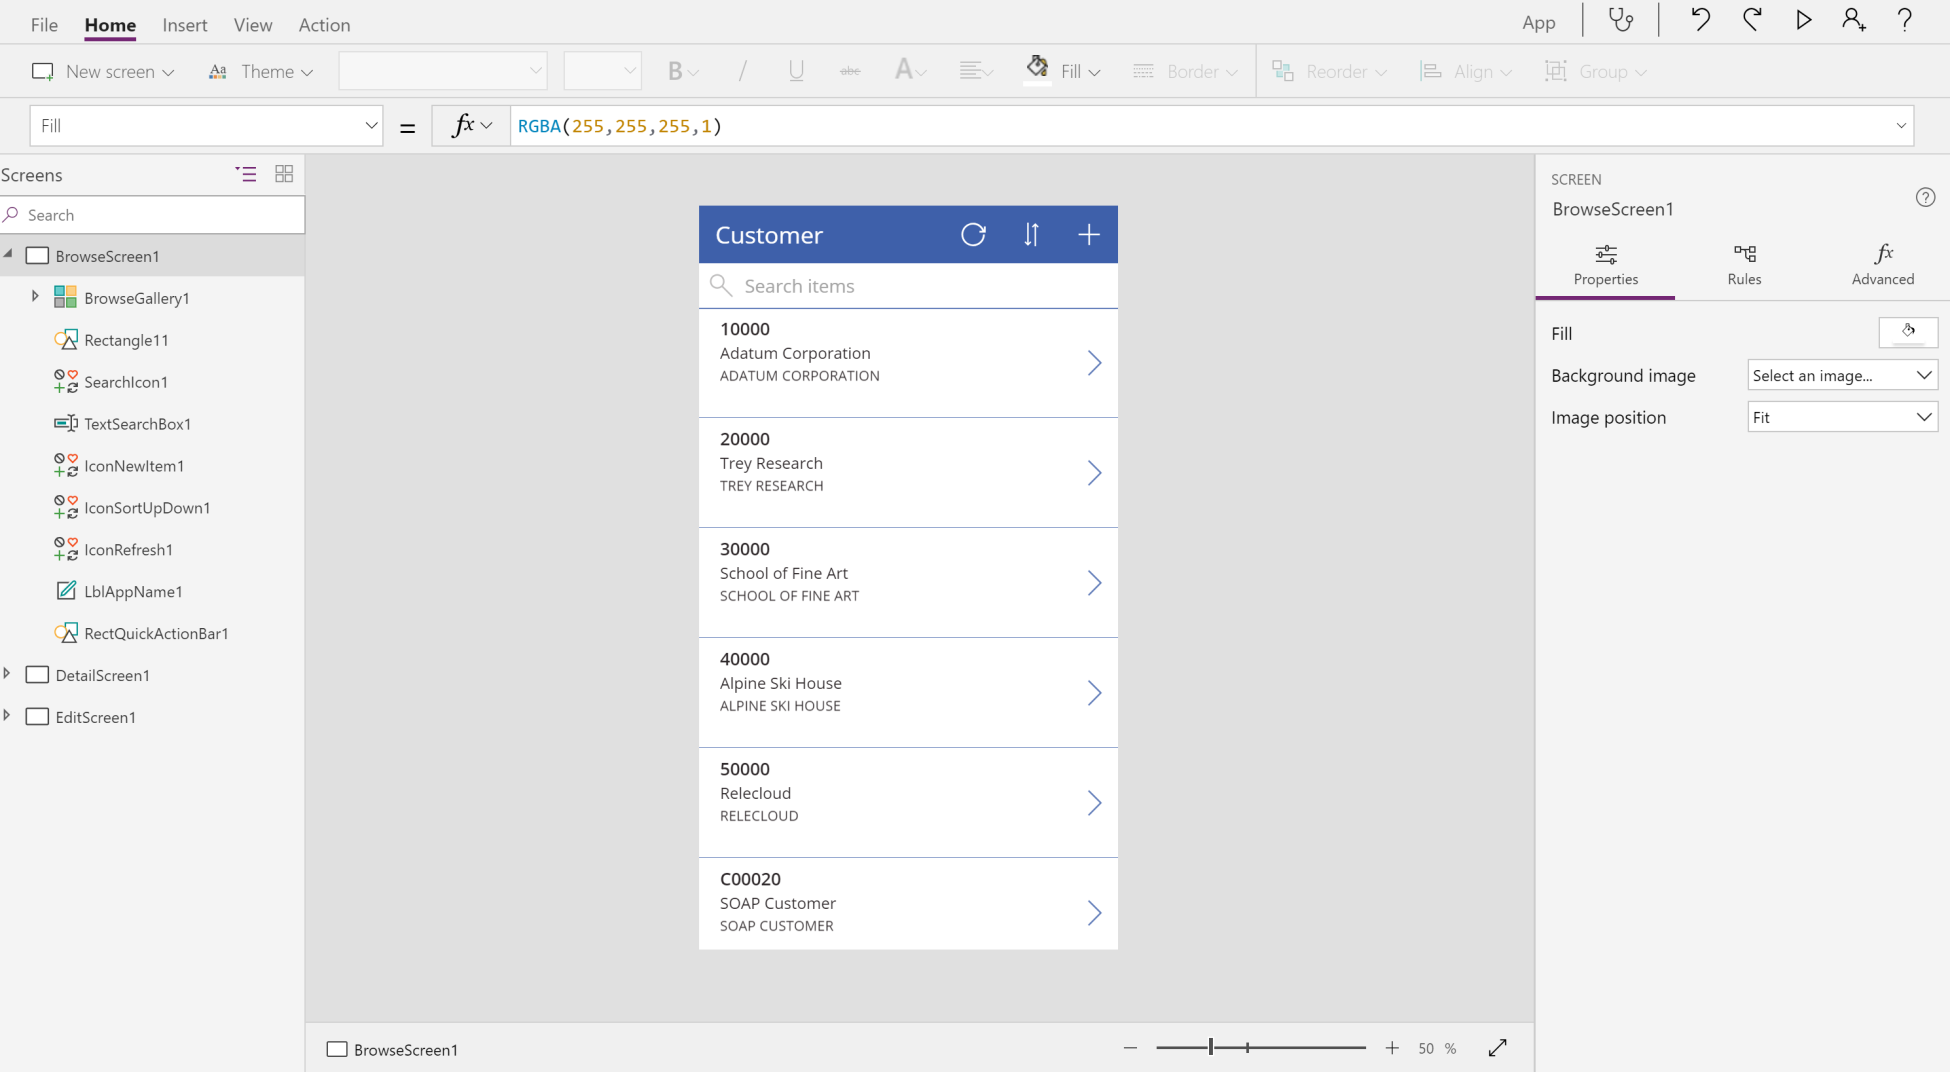 Microsoft PowerApps - Dynamics 365 Business Central